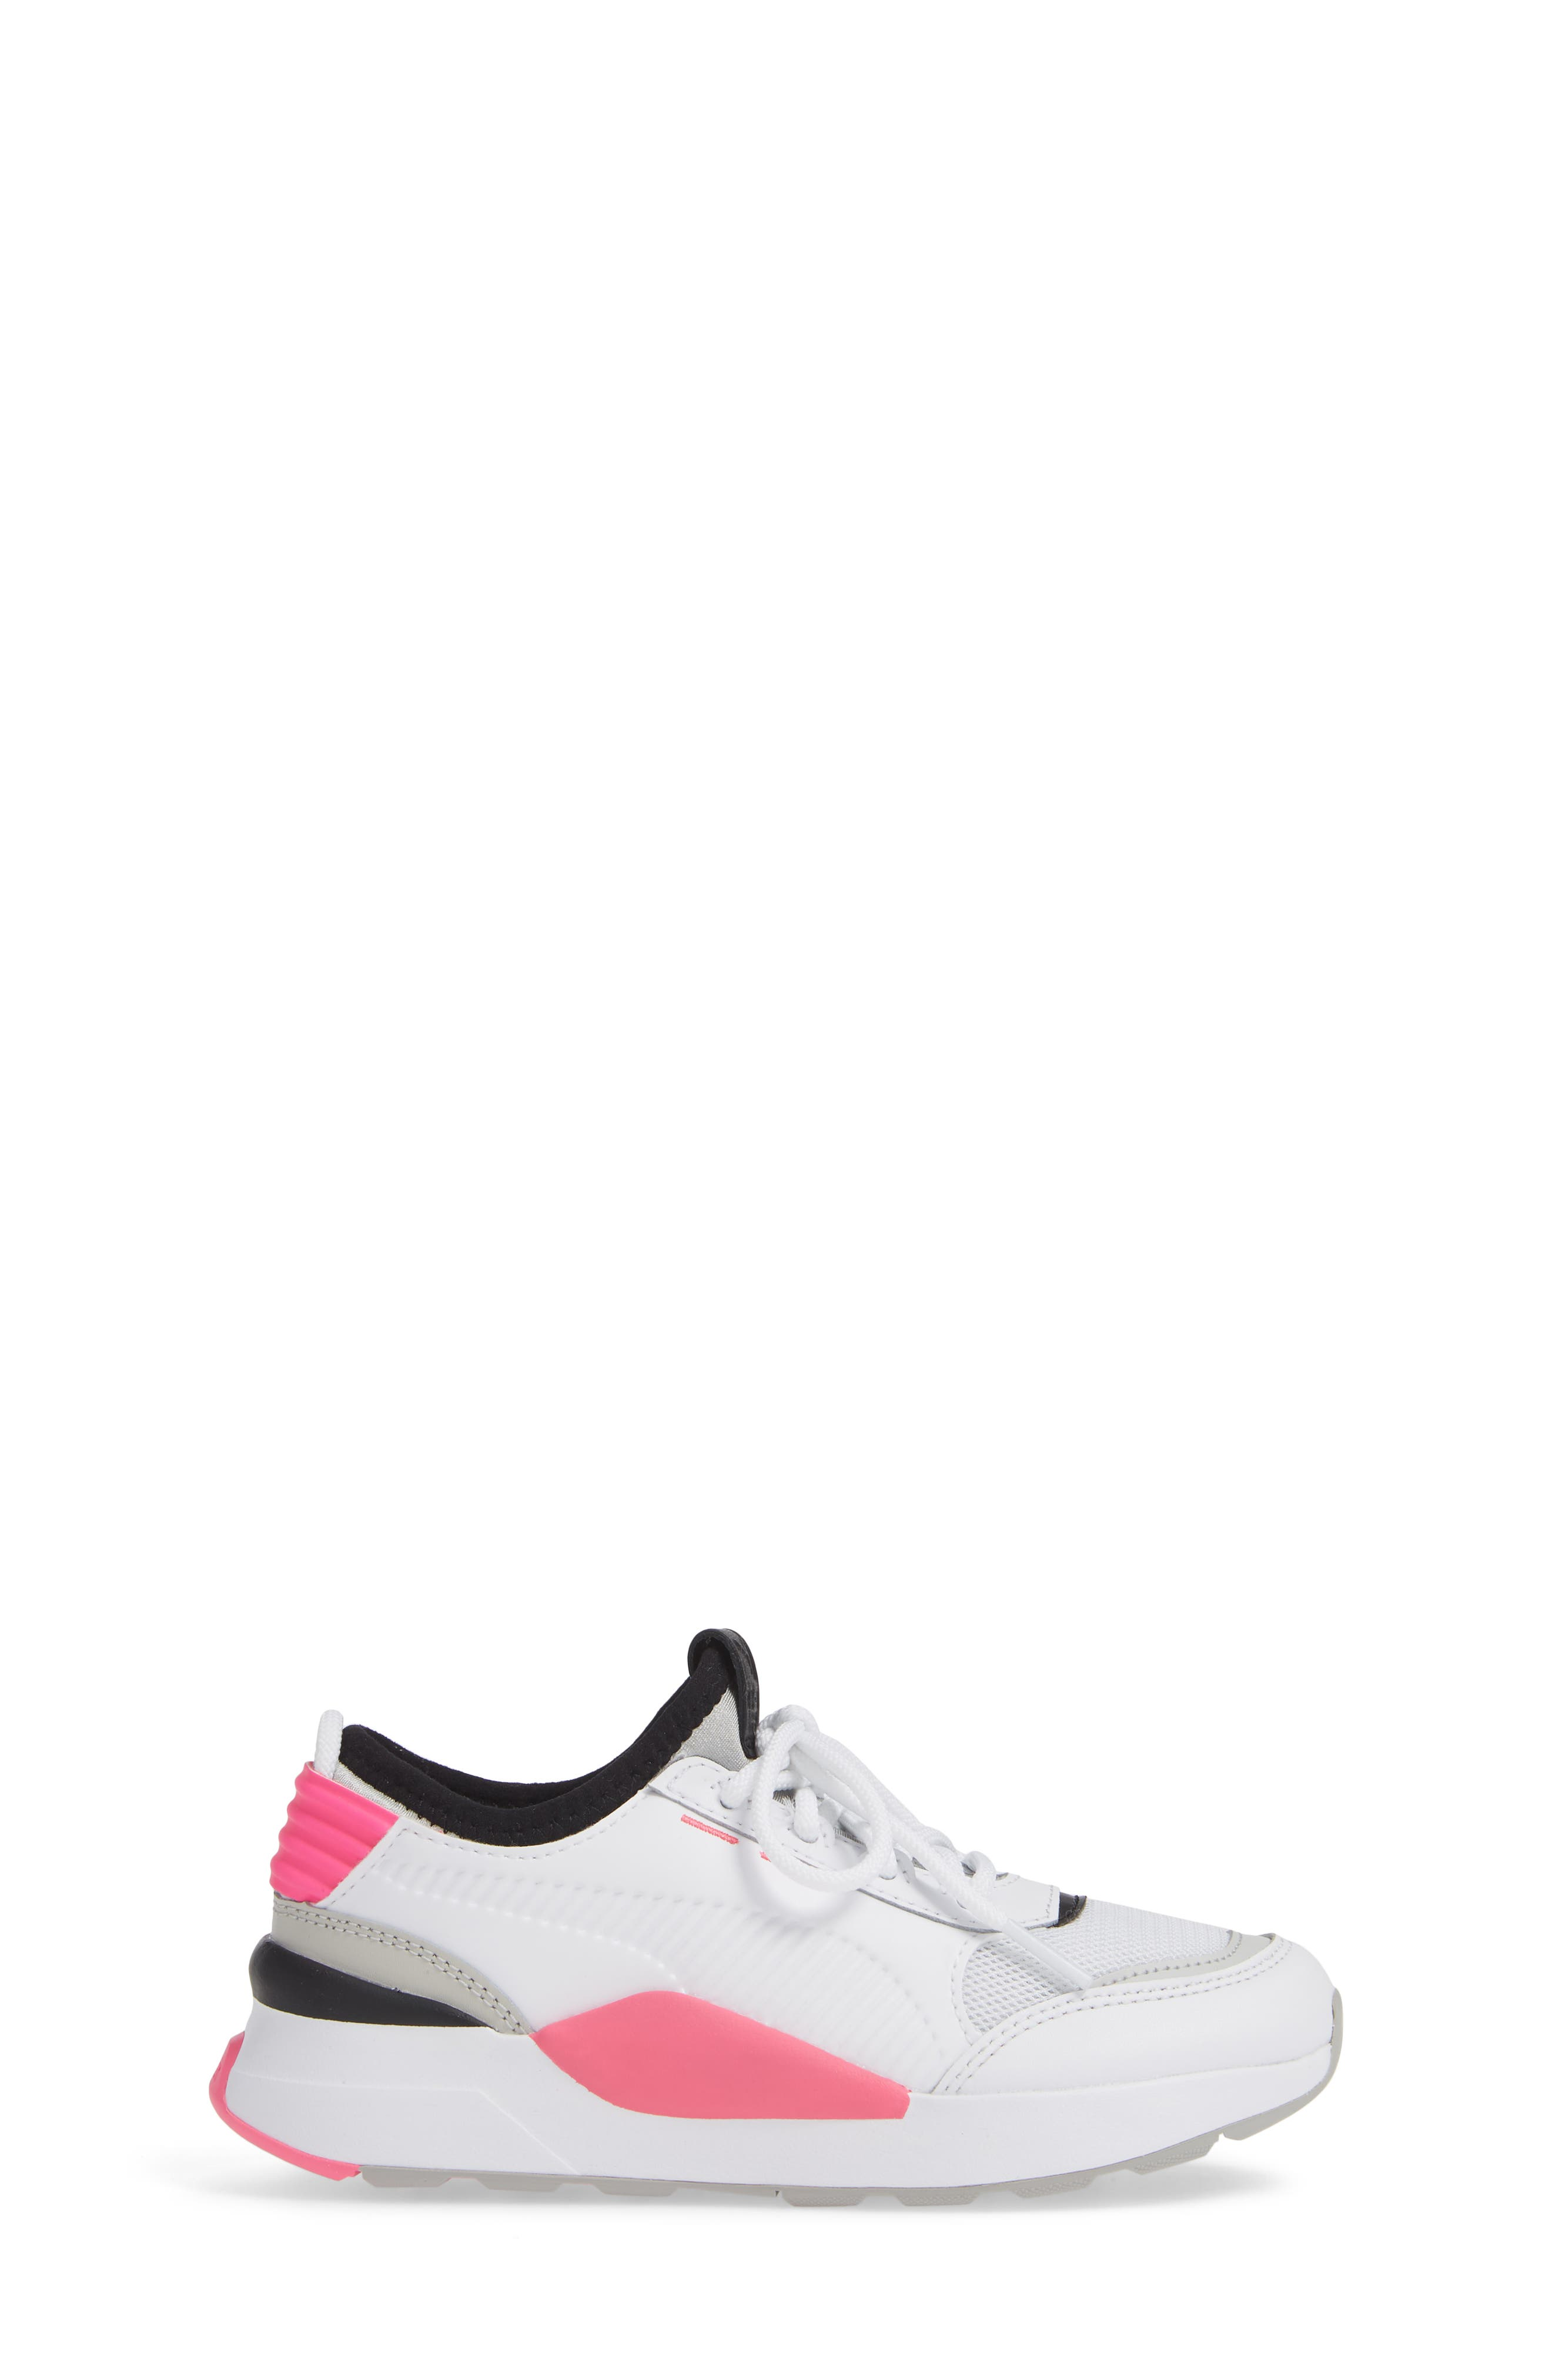 RS-0 Play Sneaker,                             Alternate thumbnail 3, color,                             101